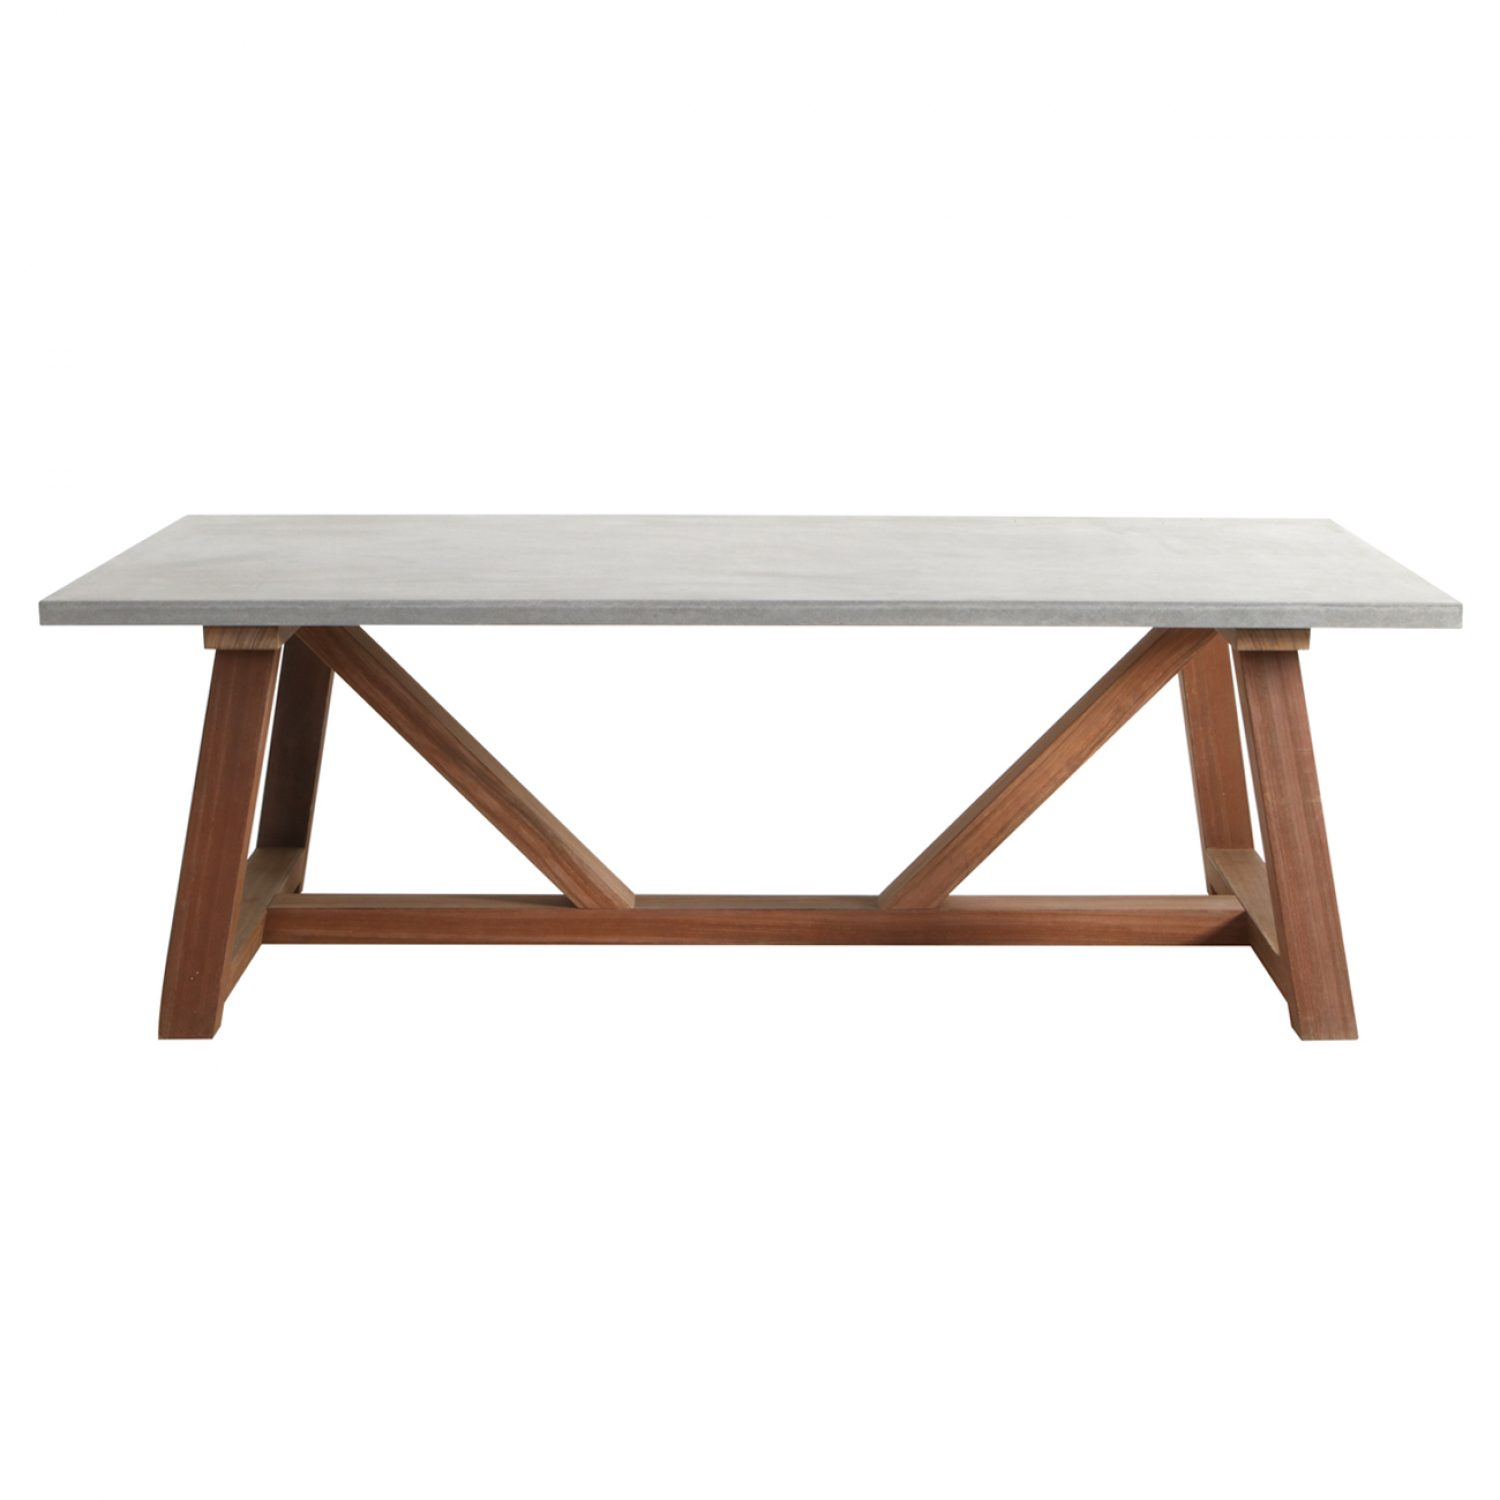 Mallorca Concrete Table